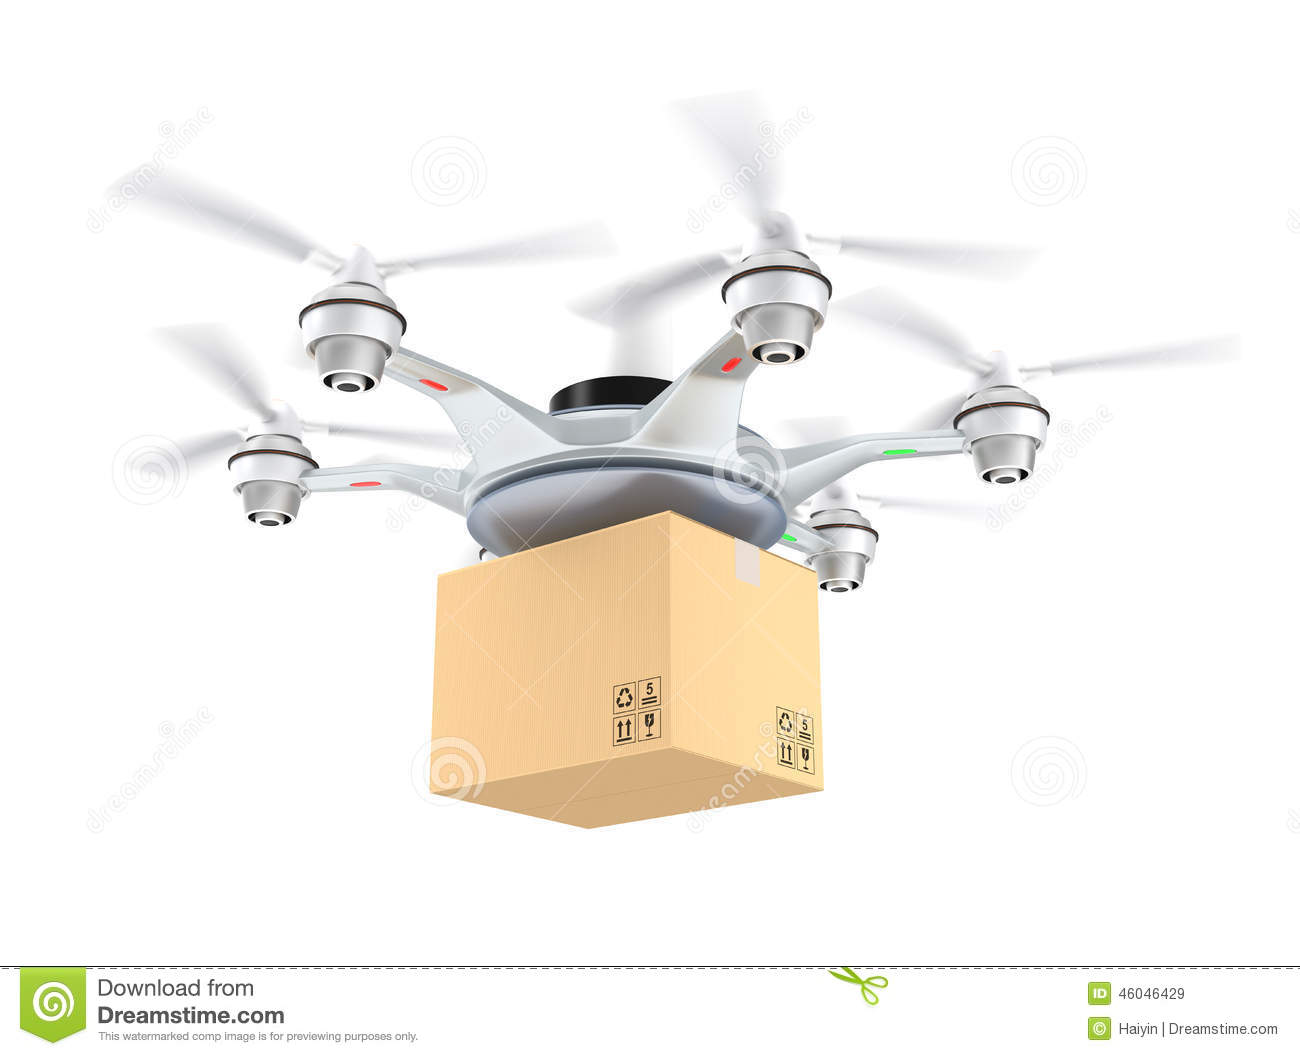 amazon prime air drone delivery with Stock Illustration Drone Delivery Cardboard Package White Background Image46046429 on Amazon Prime Air together with Drone Delivery Economics as well Amazon Launches First Prime Air Aircraft additionally Amazon Announces Delivery DRONE in addition Amazon Flashes Prime Air Drone Delivery In Its Super Bowl Ad.